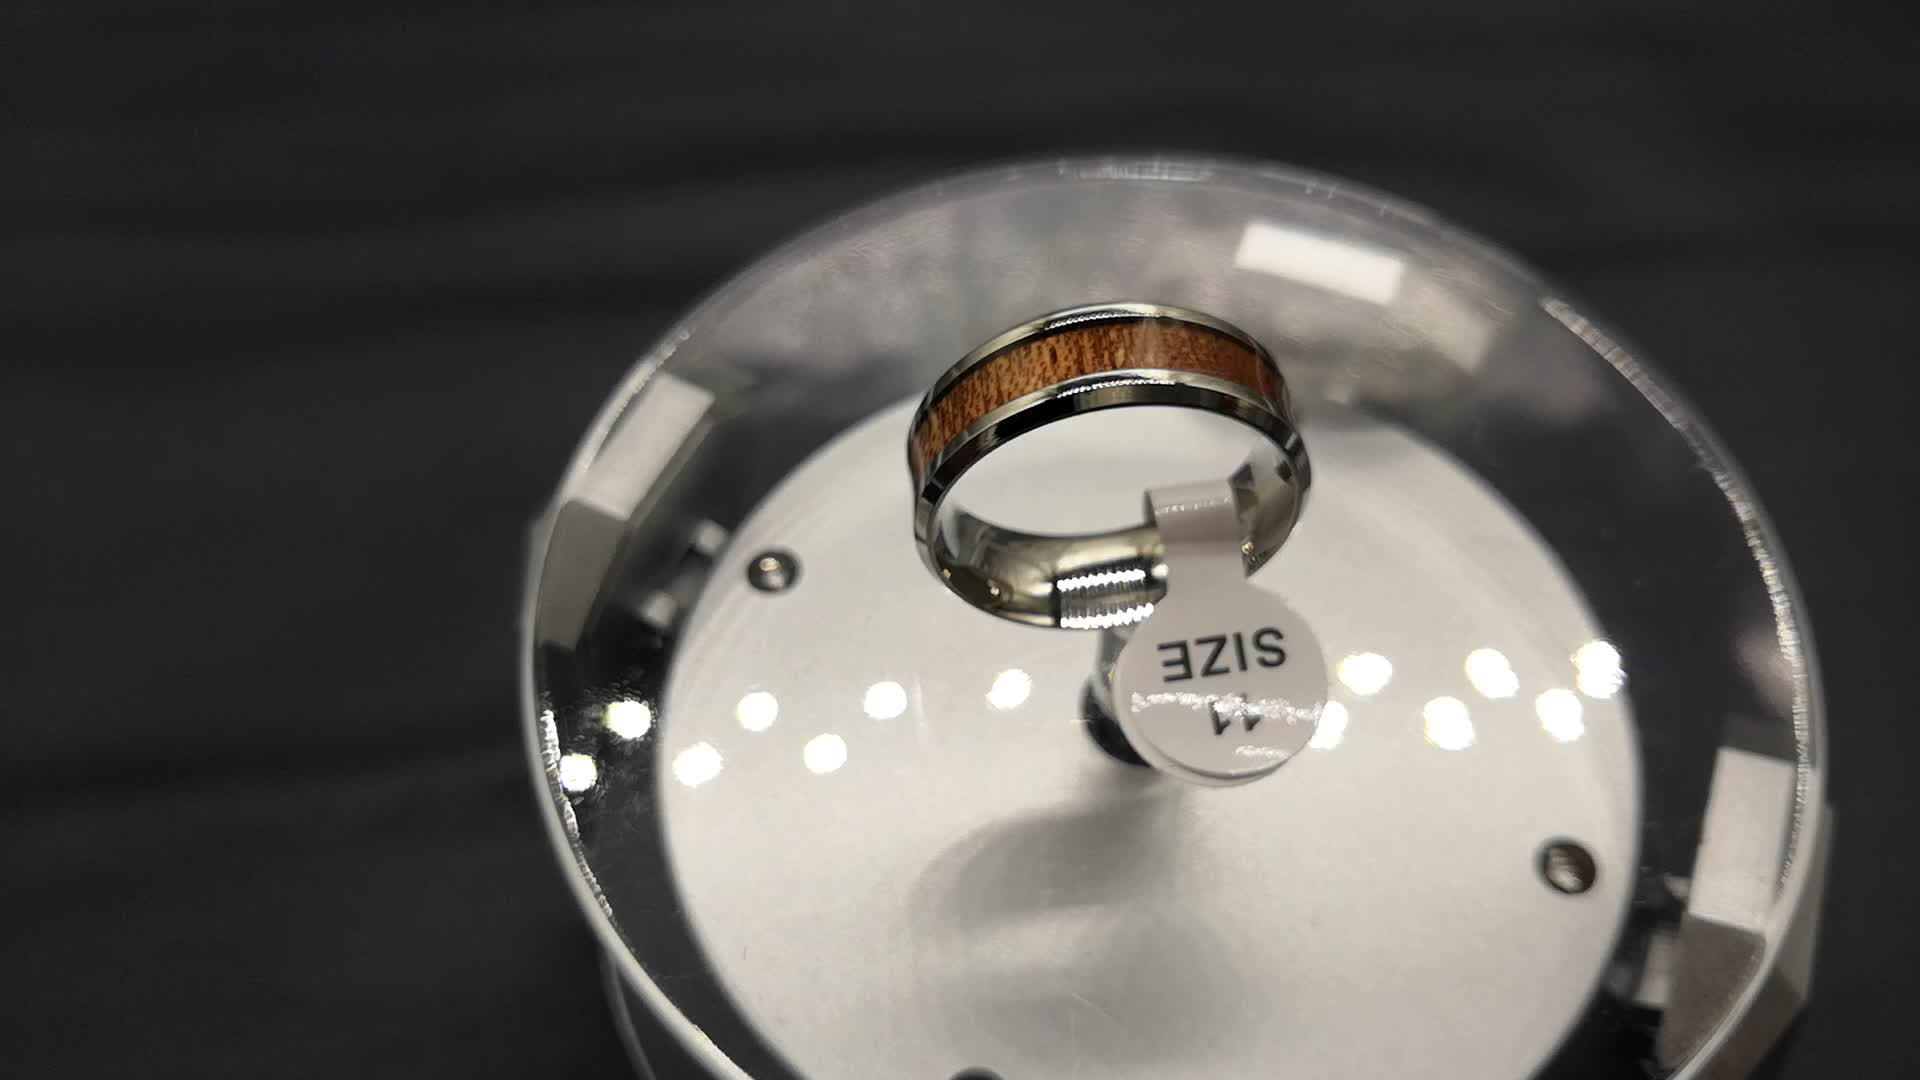 2019 Trend Stainless Steel Jewelry inlay Wood Rings Woman Man Fashion Accessories Ring acero inoxidable anillos de